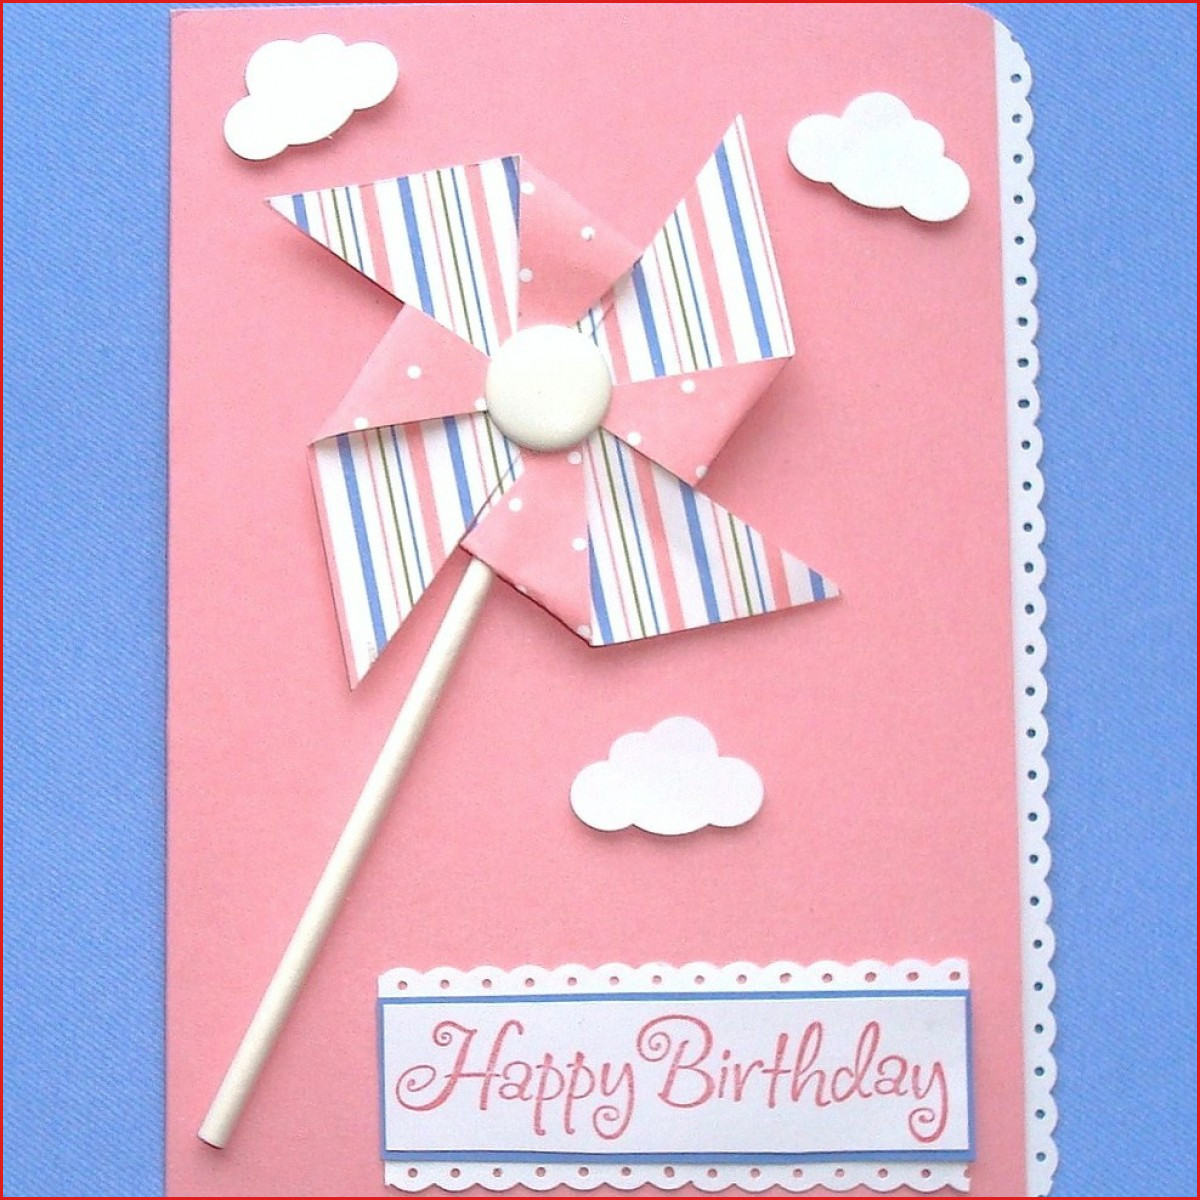 Handmade Birthday Invitation Cards Ideas Birthday Cards On Line Online Birthday Invitation Card Maker Free